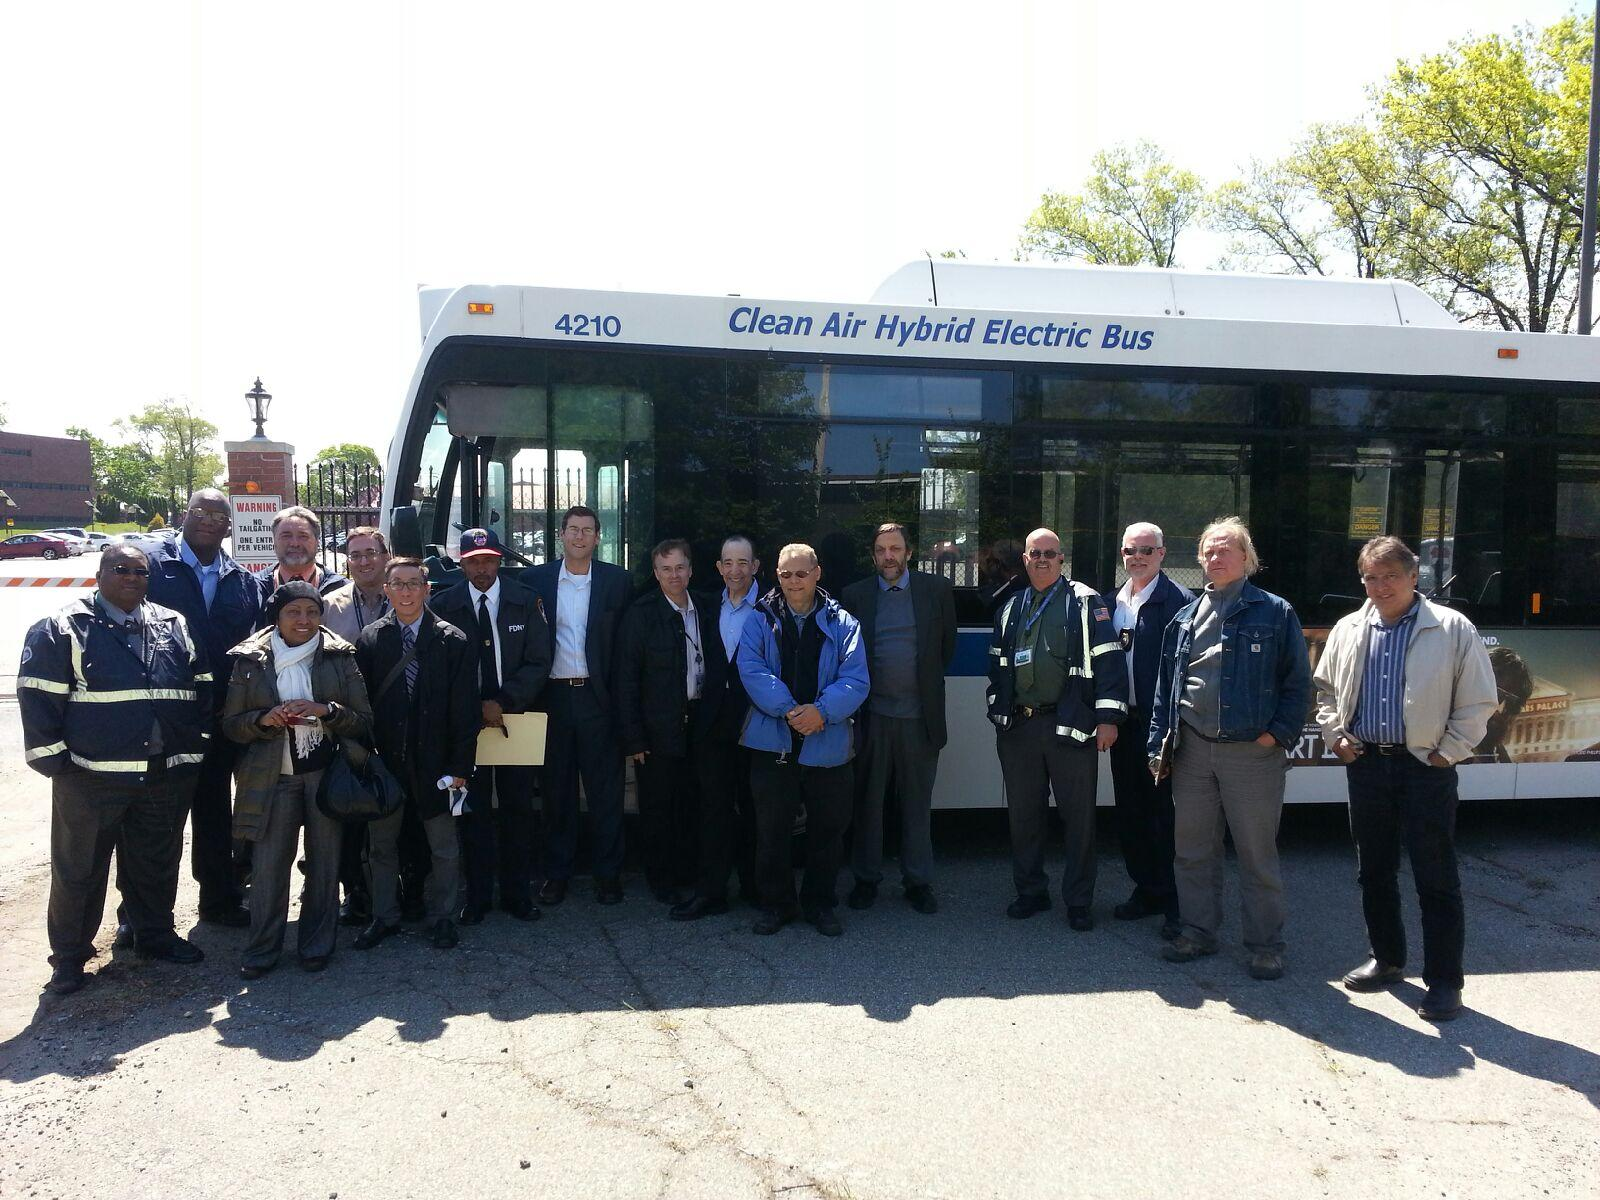 On Tuesday, May 14, 2013, Assemblyman Braunstein joined community leaders and agency and elected official representatives at Fort Totten to discuss the feasibility of the Q13 and Q16 bus route to continue to use Fort Totten as a turn around point despite the construction taking place there.